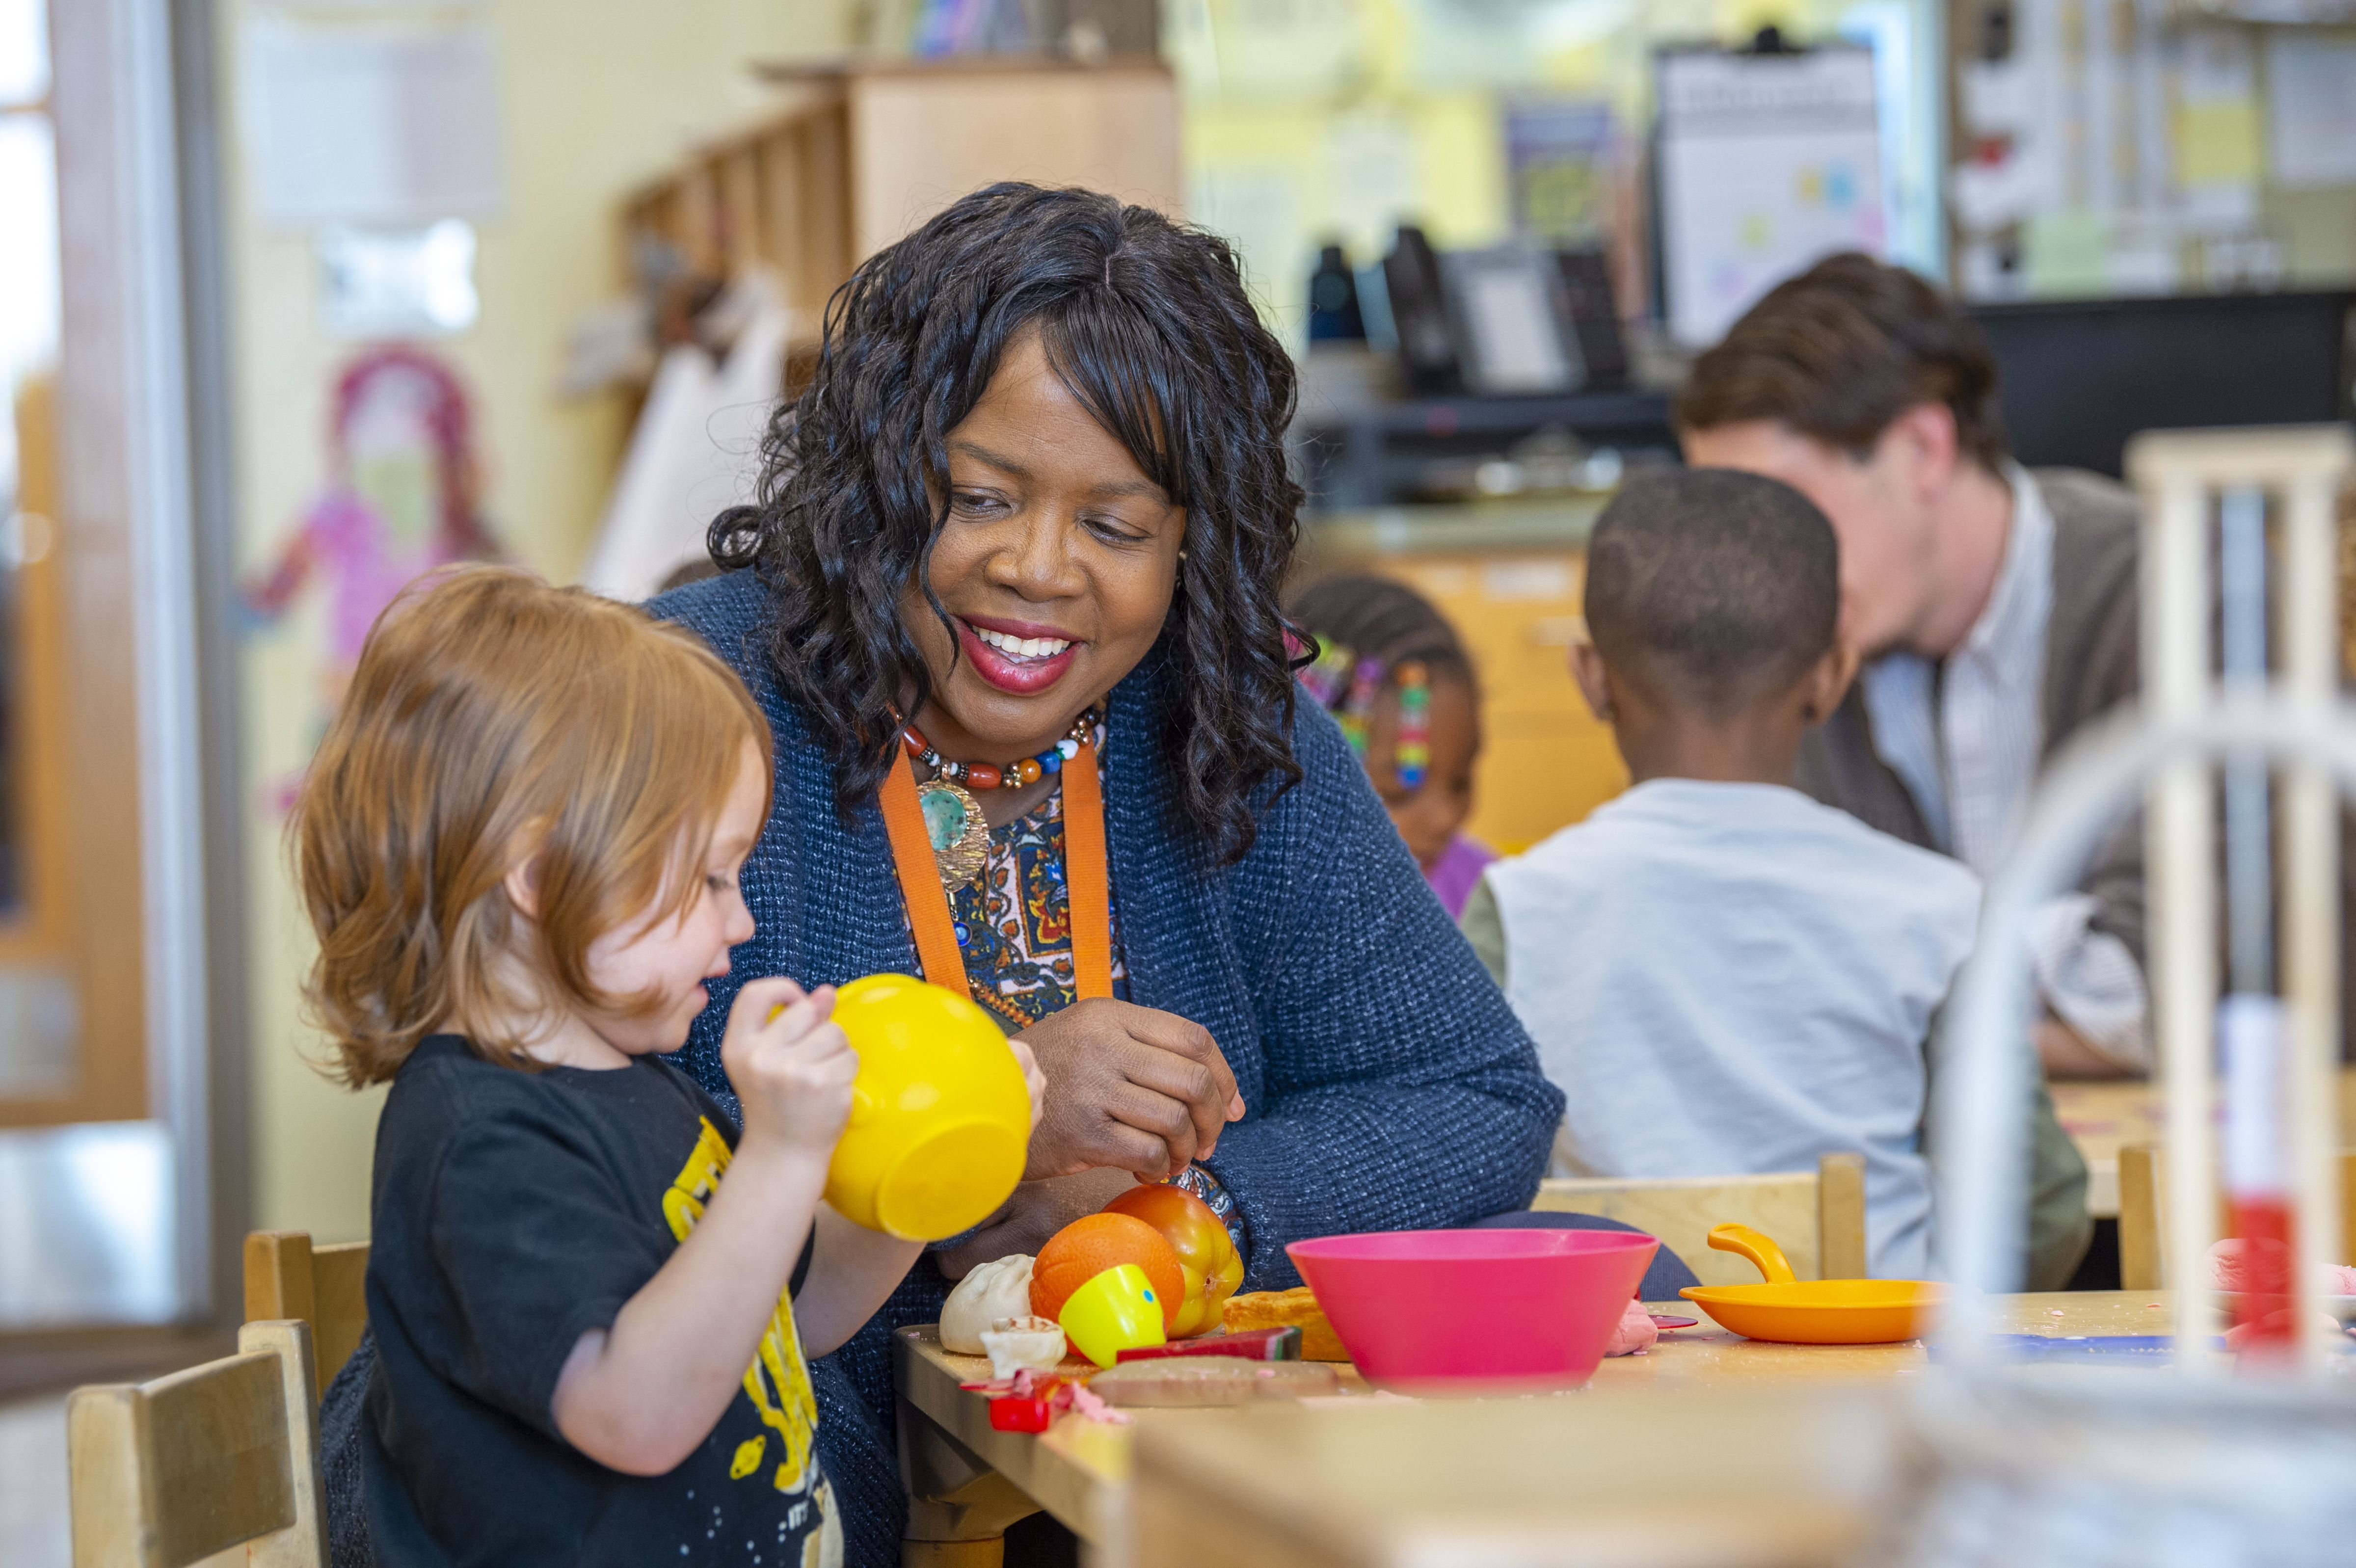 New 'Place-based' Bachelor's Program Aims To Invest Big In Colorado's Early Childhood Workforce